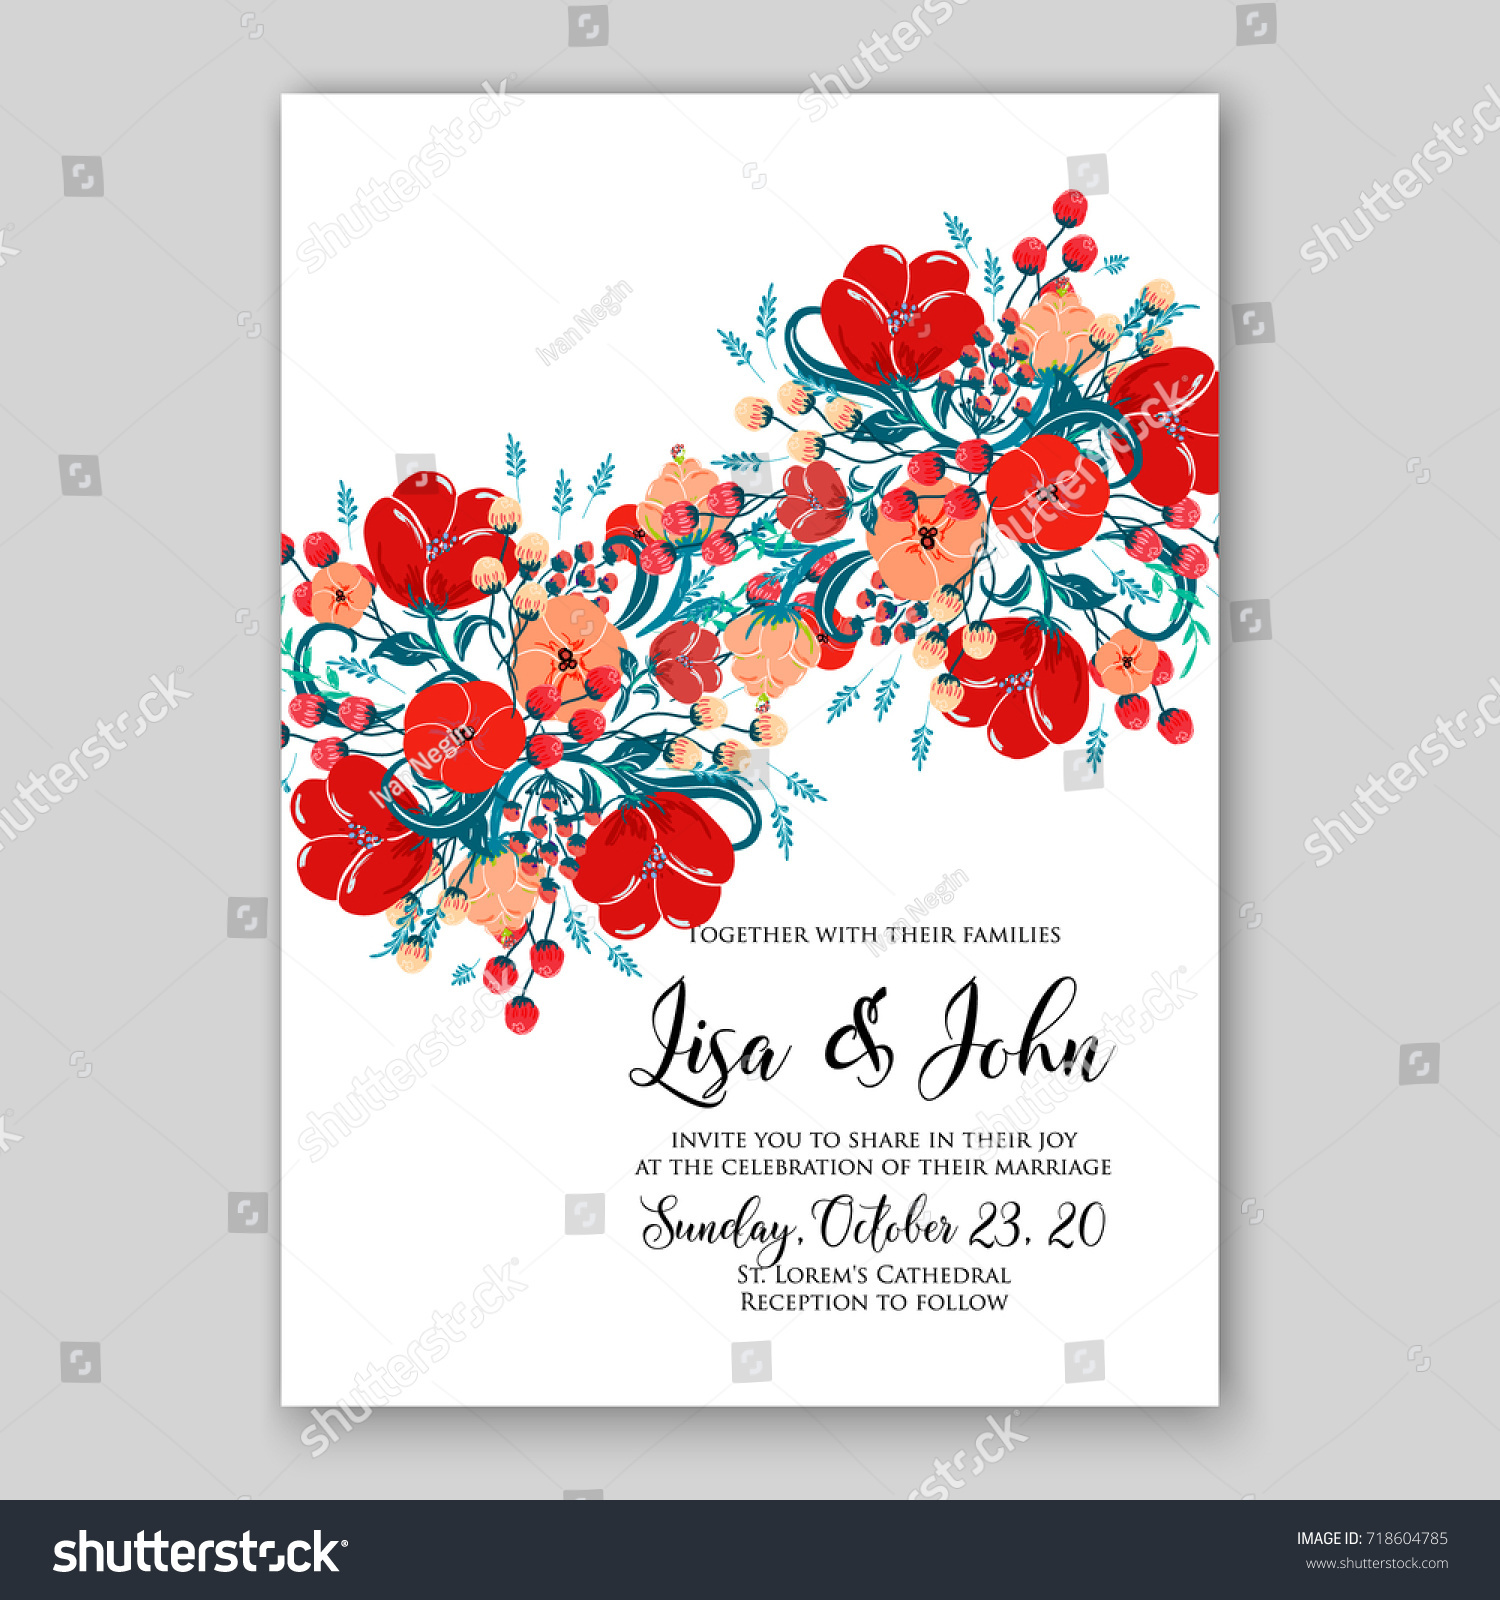 Floral Wedding Invitation Vector Template Anemone Stock Vector HD ...